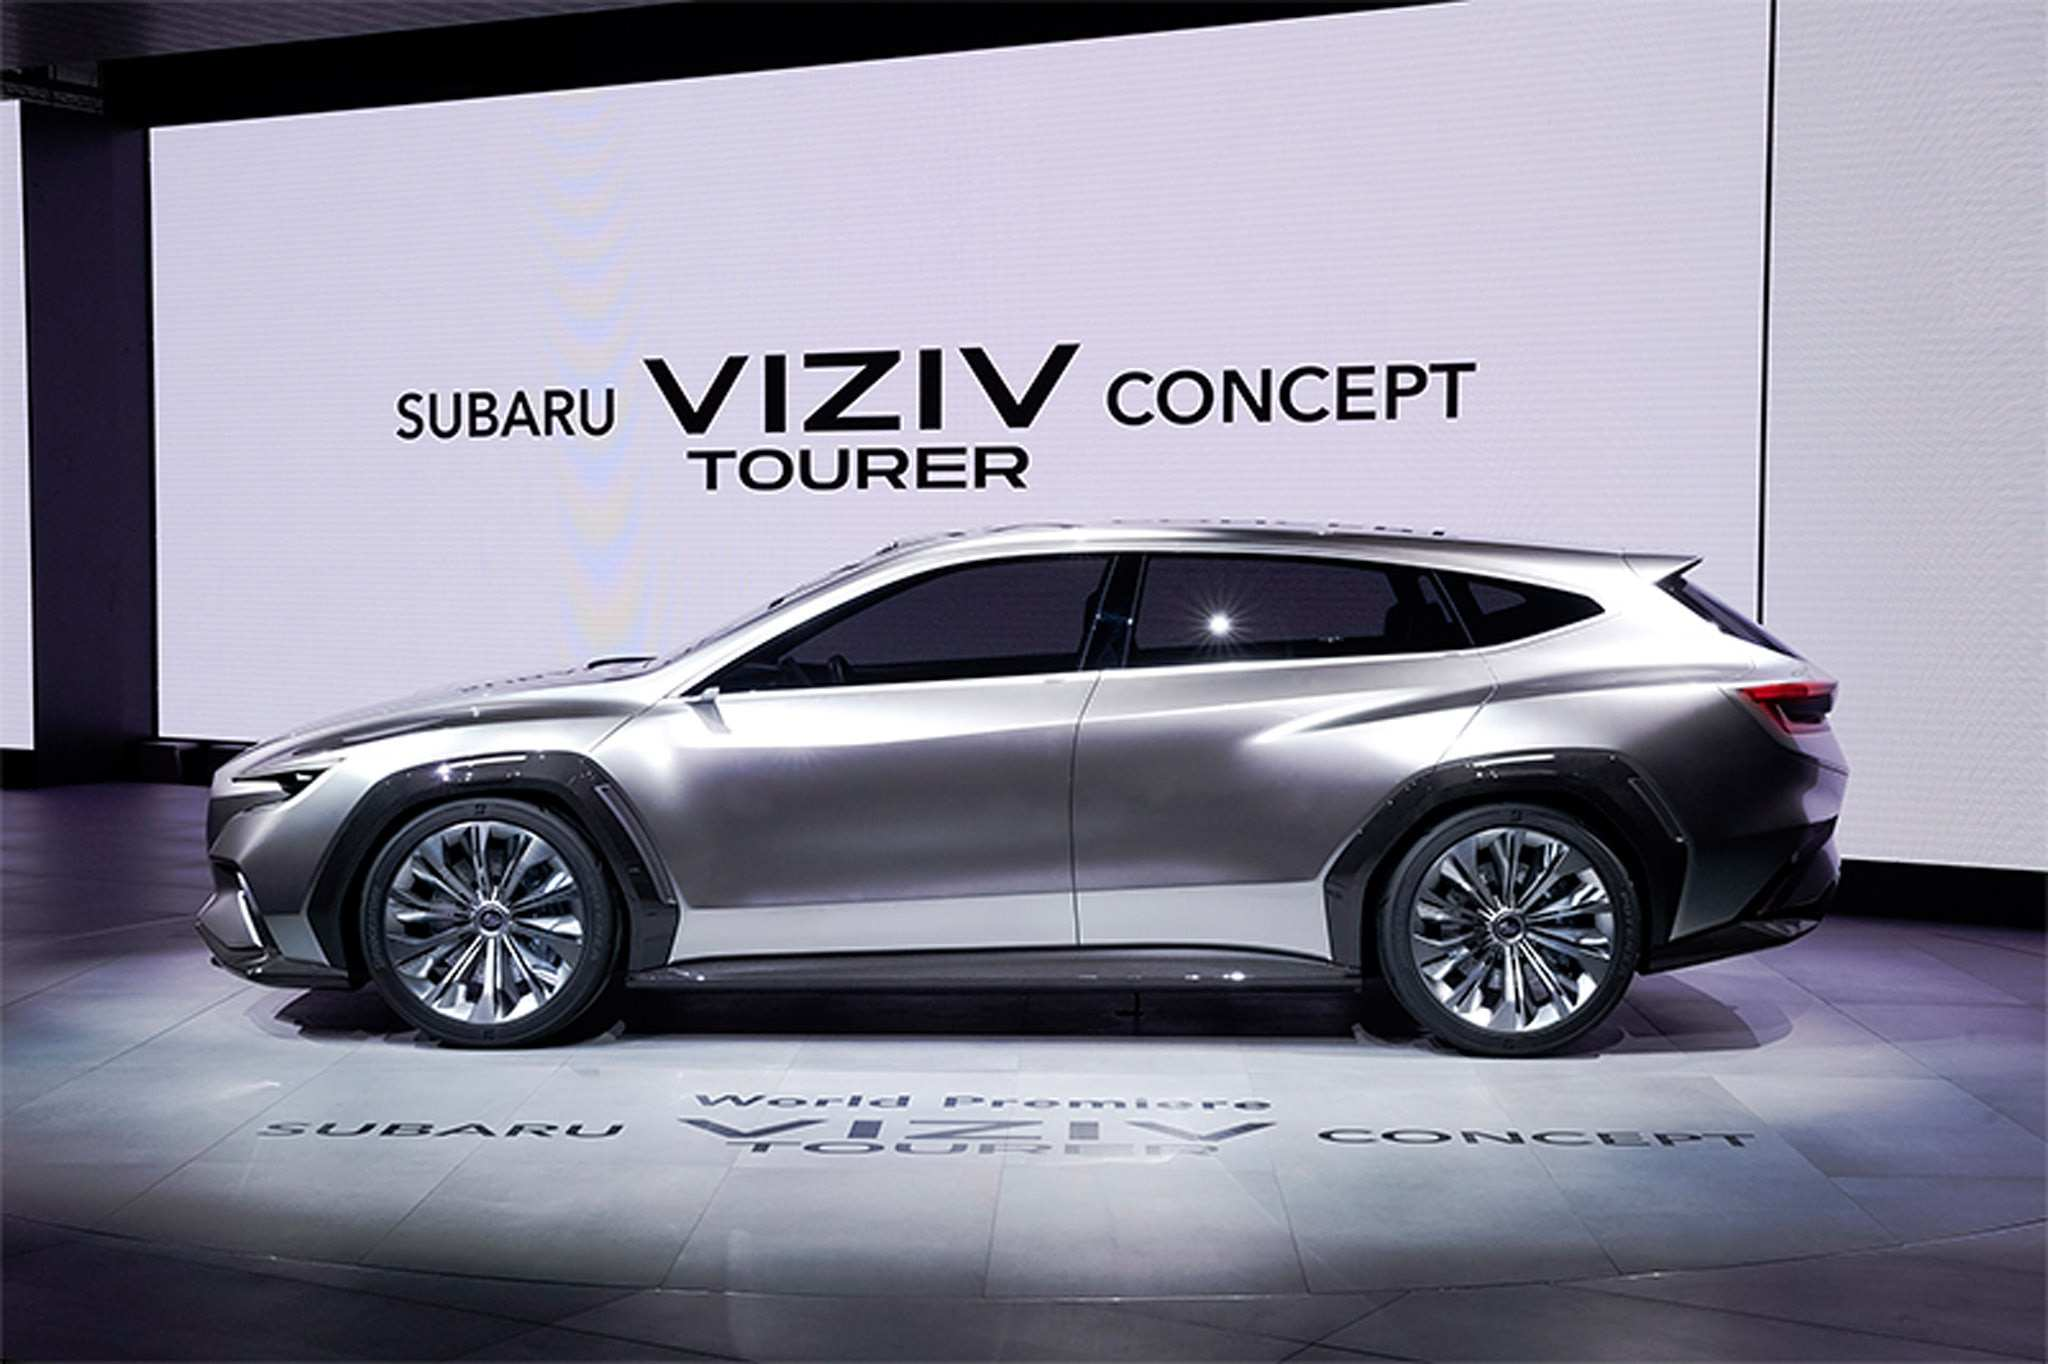 78 The Best Subaru Viziv Tourer 2020 Price